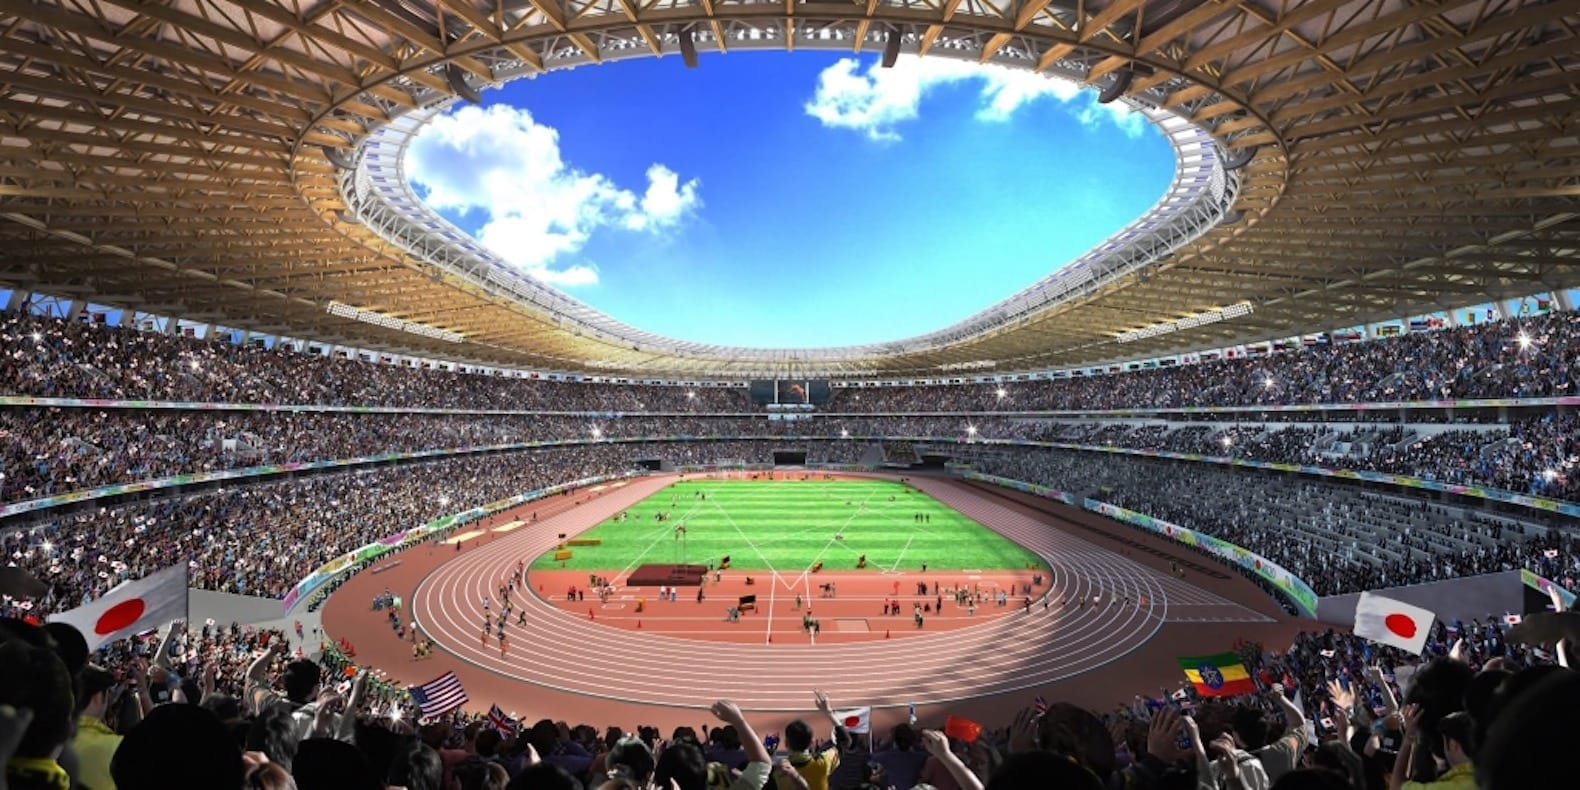 Best Way To Use Amex Points 2020 How To Plan For Tokyo 2020 Olympics Using Points & Miles